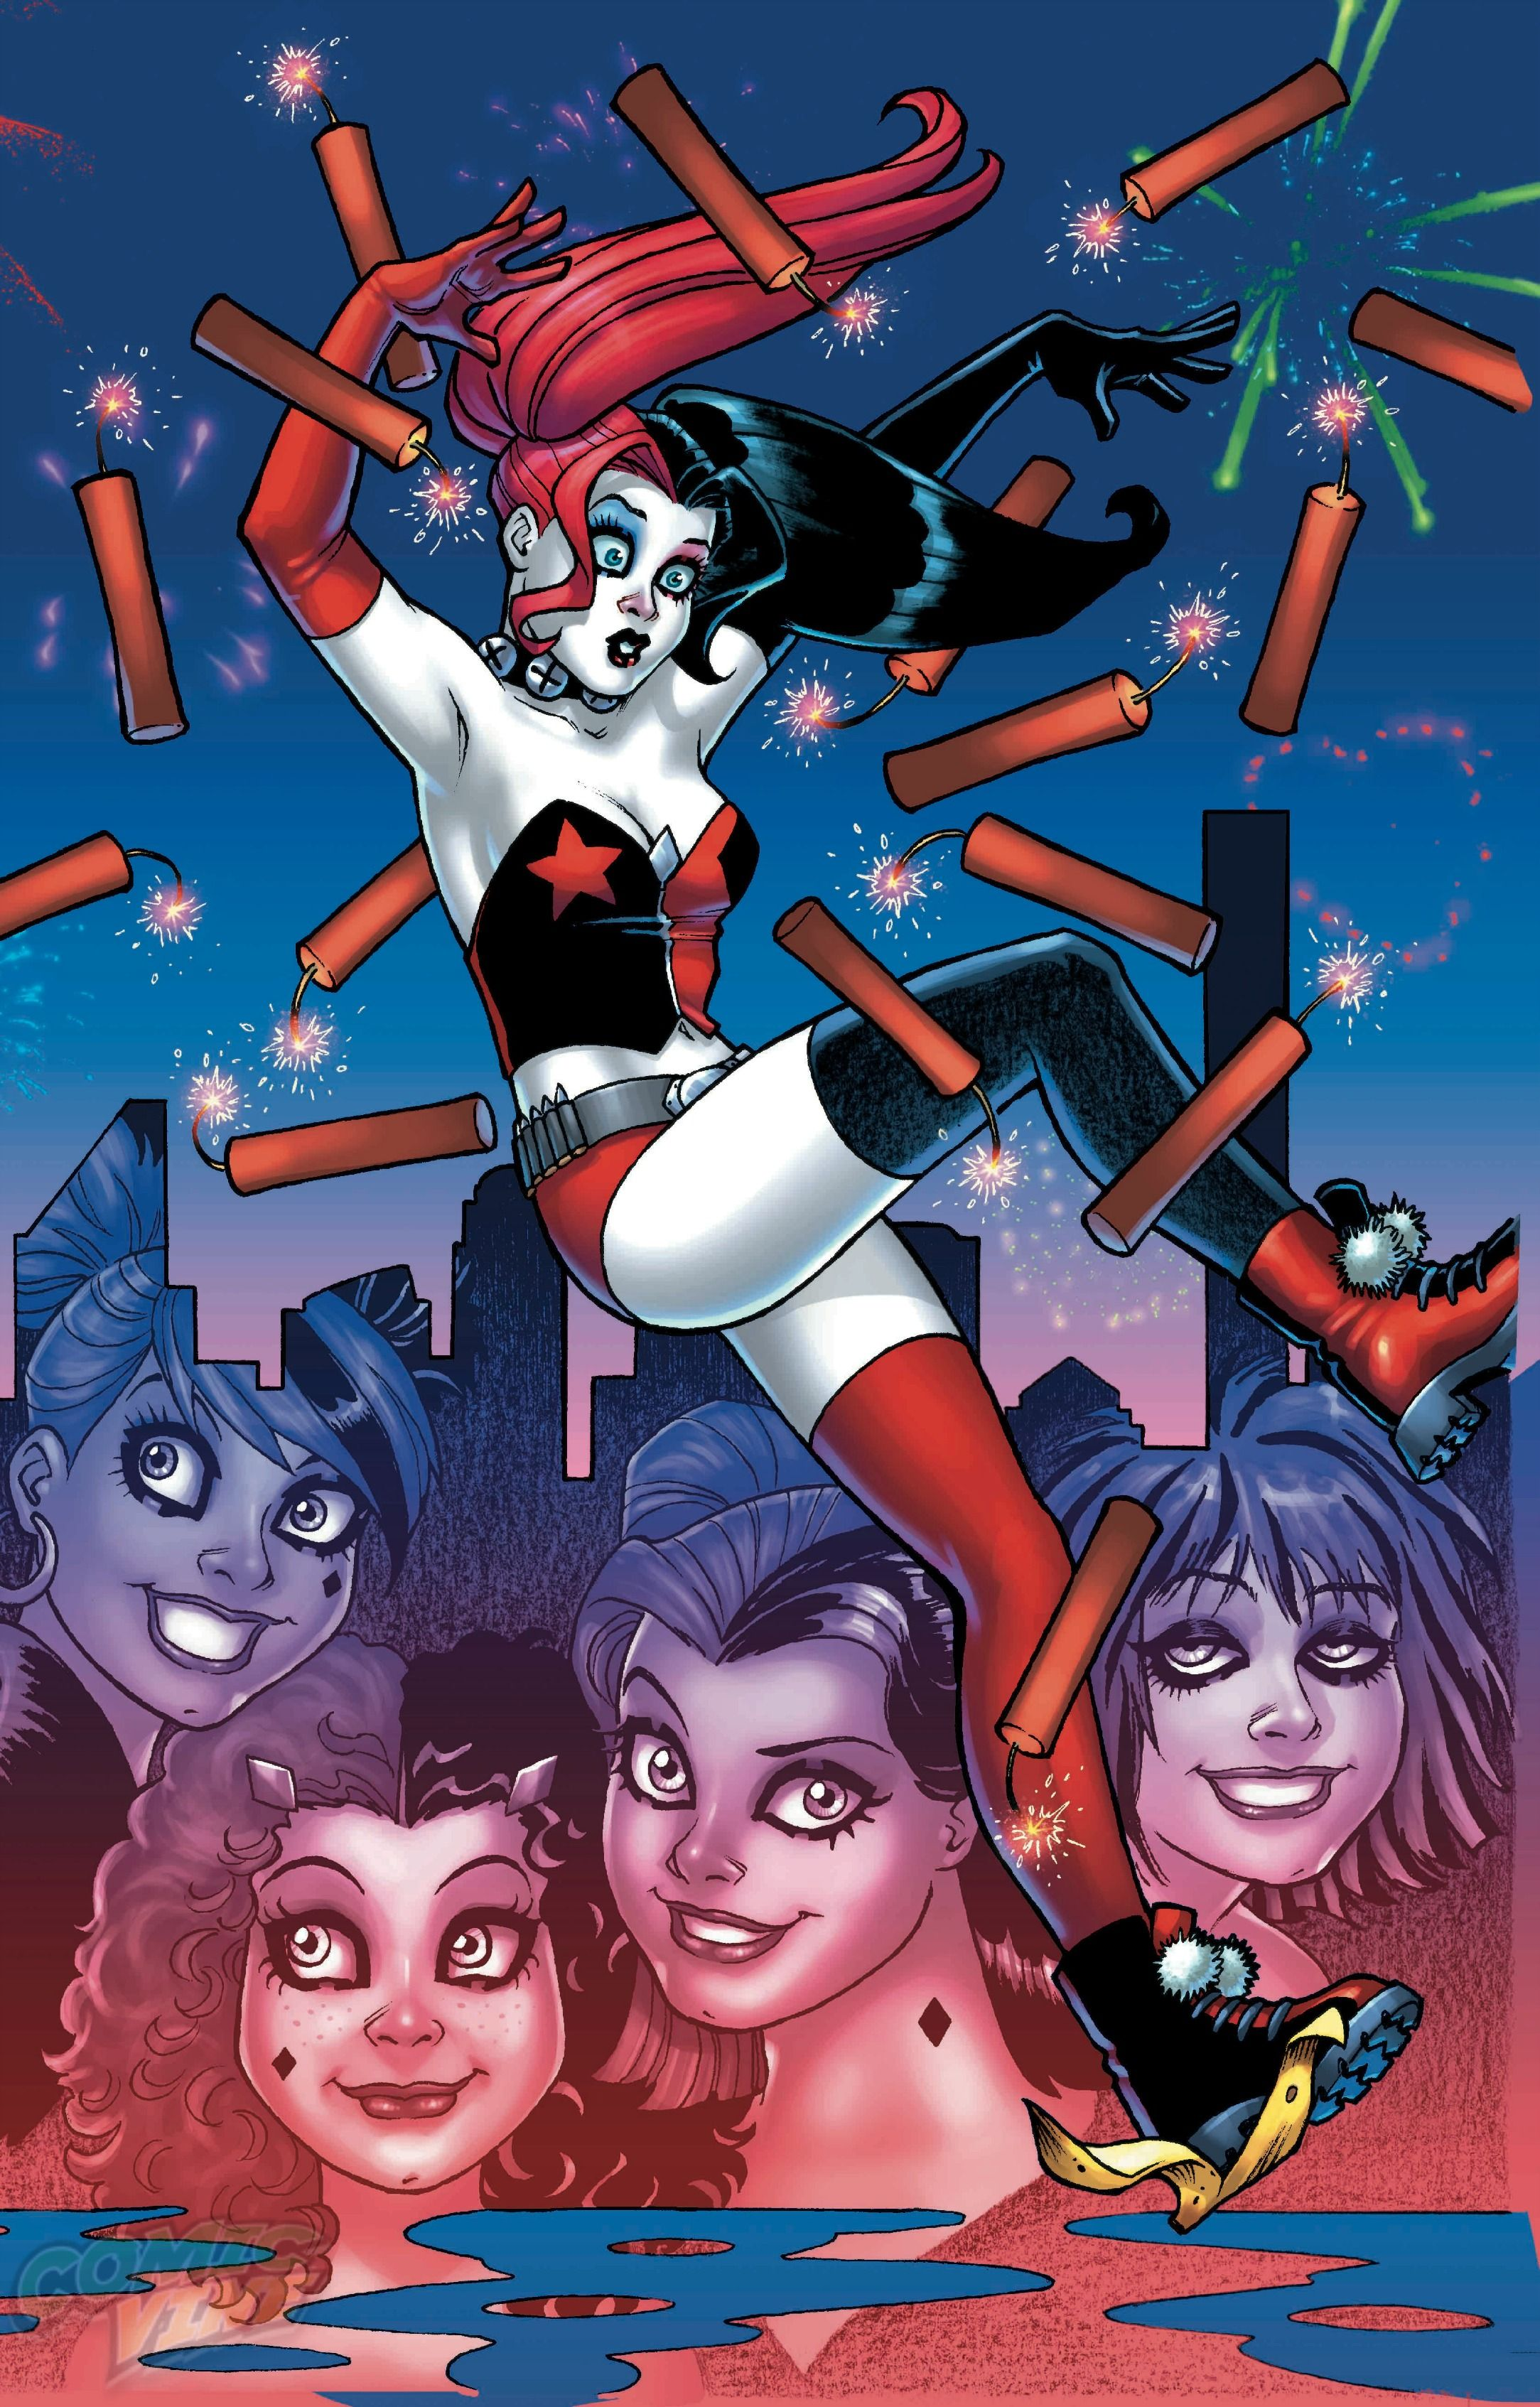 Harley Quinn #16 Right Hand Variant Cover by Amanda Conner